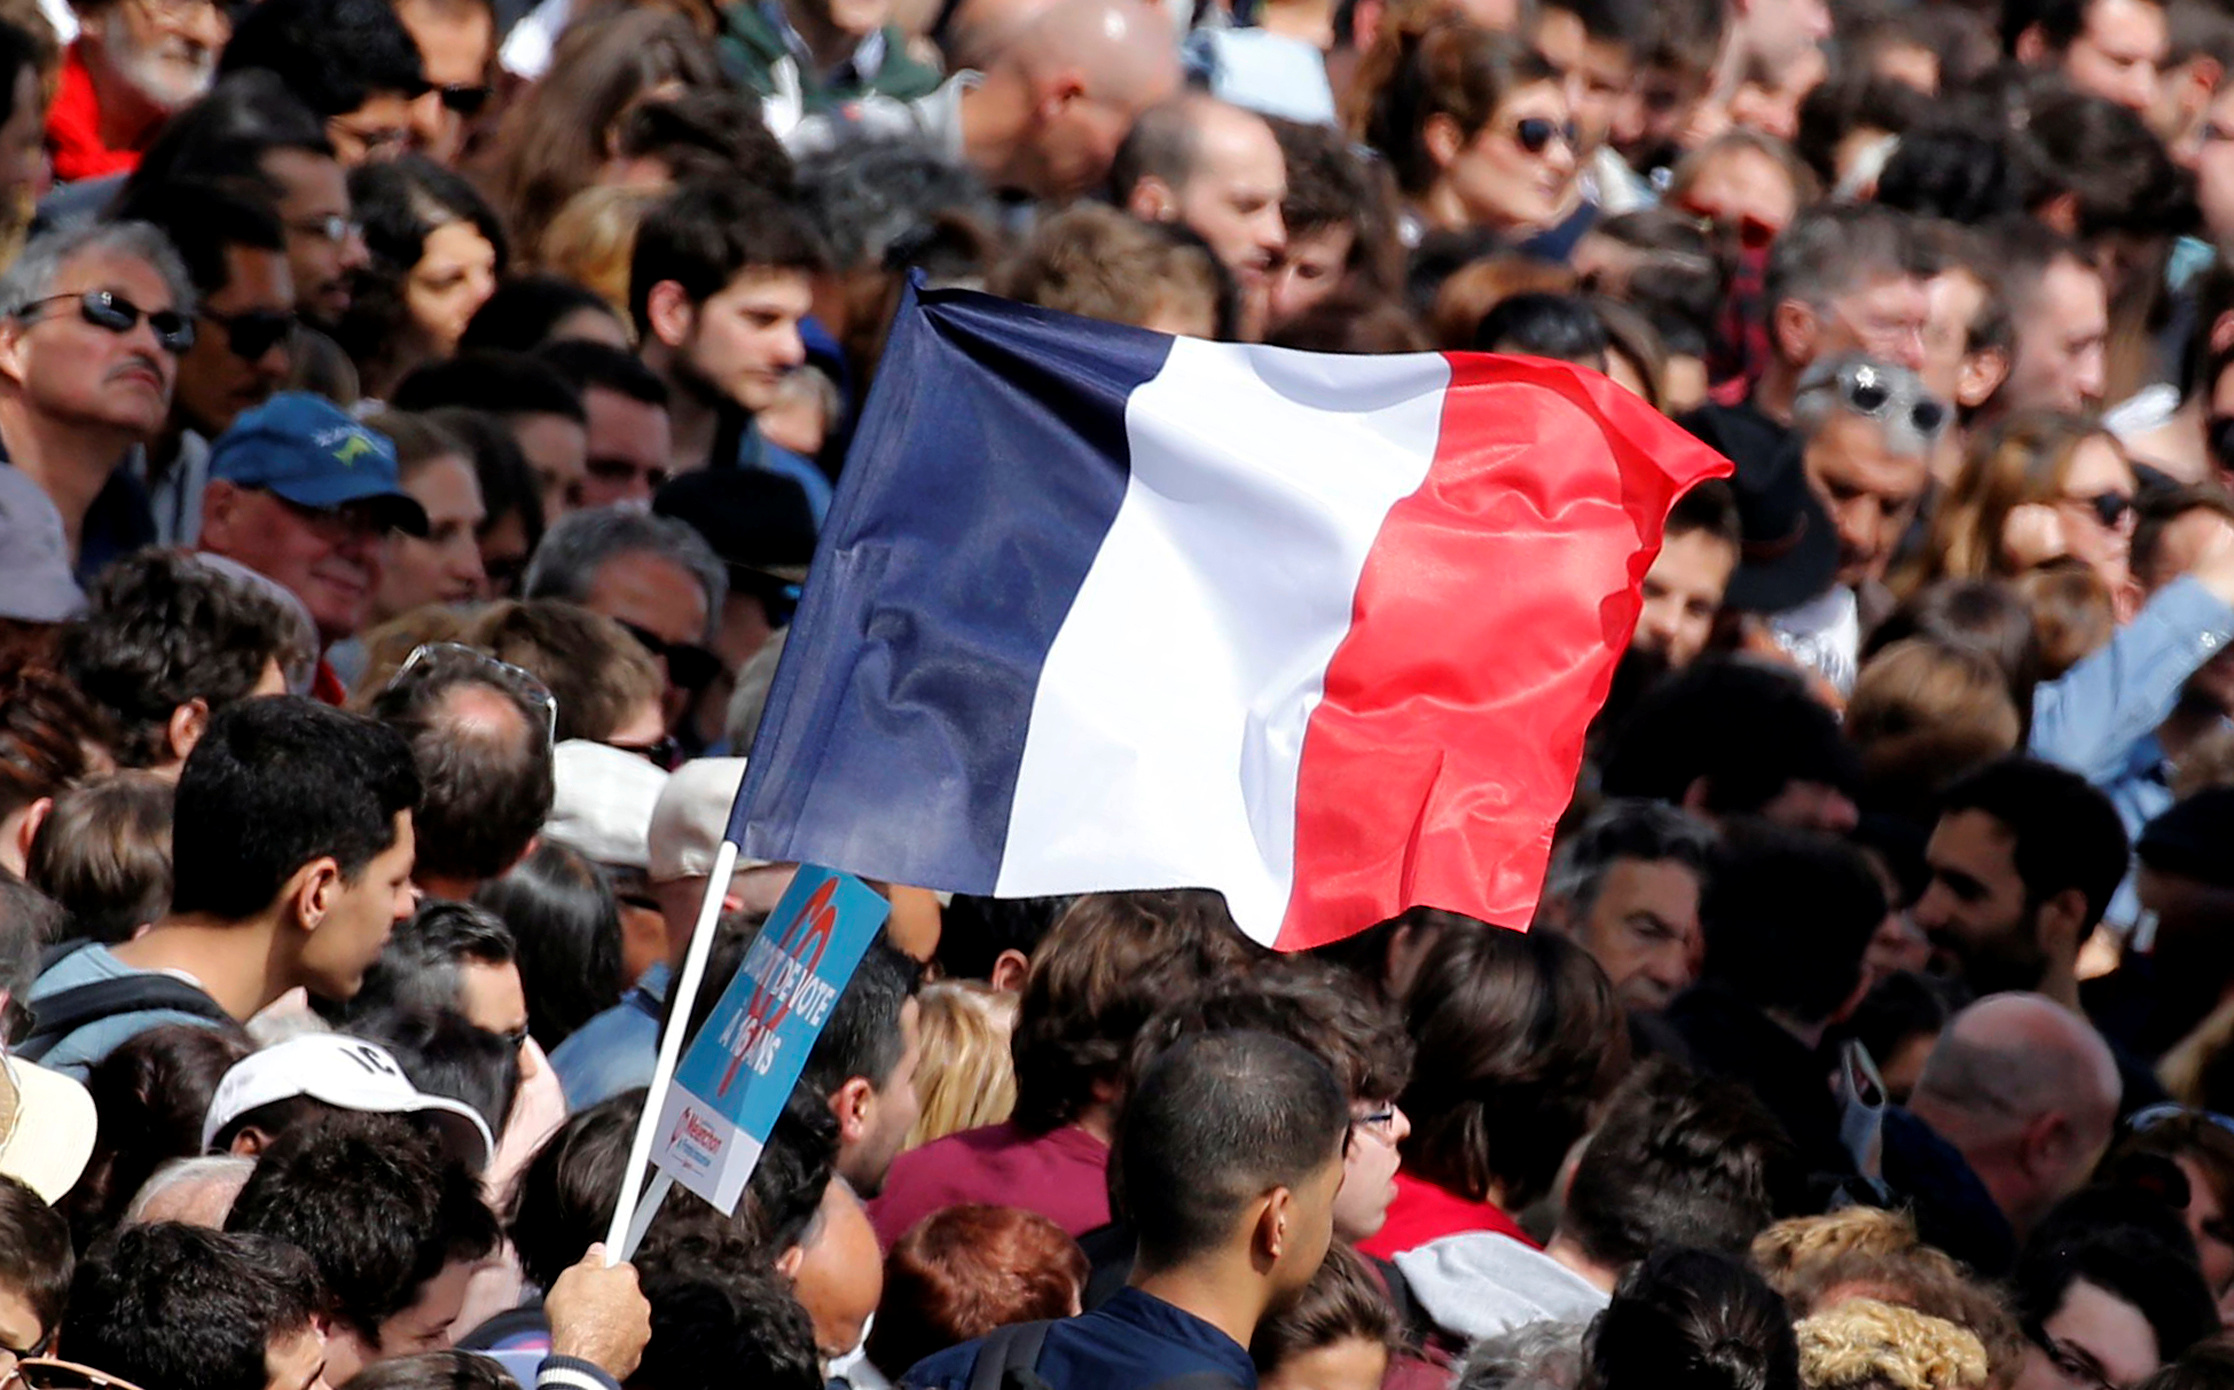 The French election is one of the most hotly anticipated in Europe. Image courtesy: REUTERS/Regis Duvignau